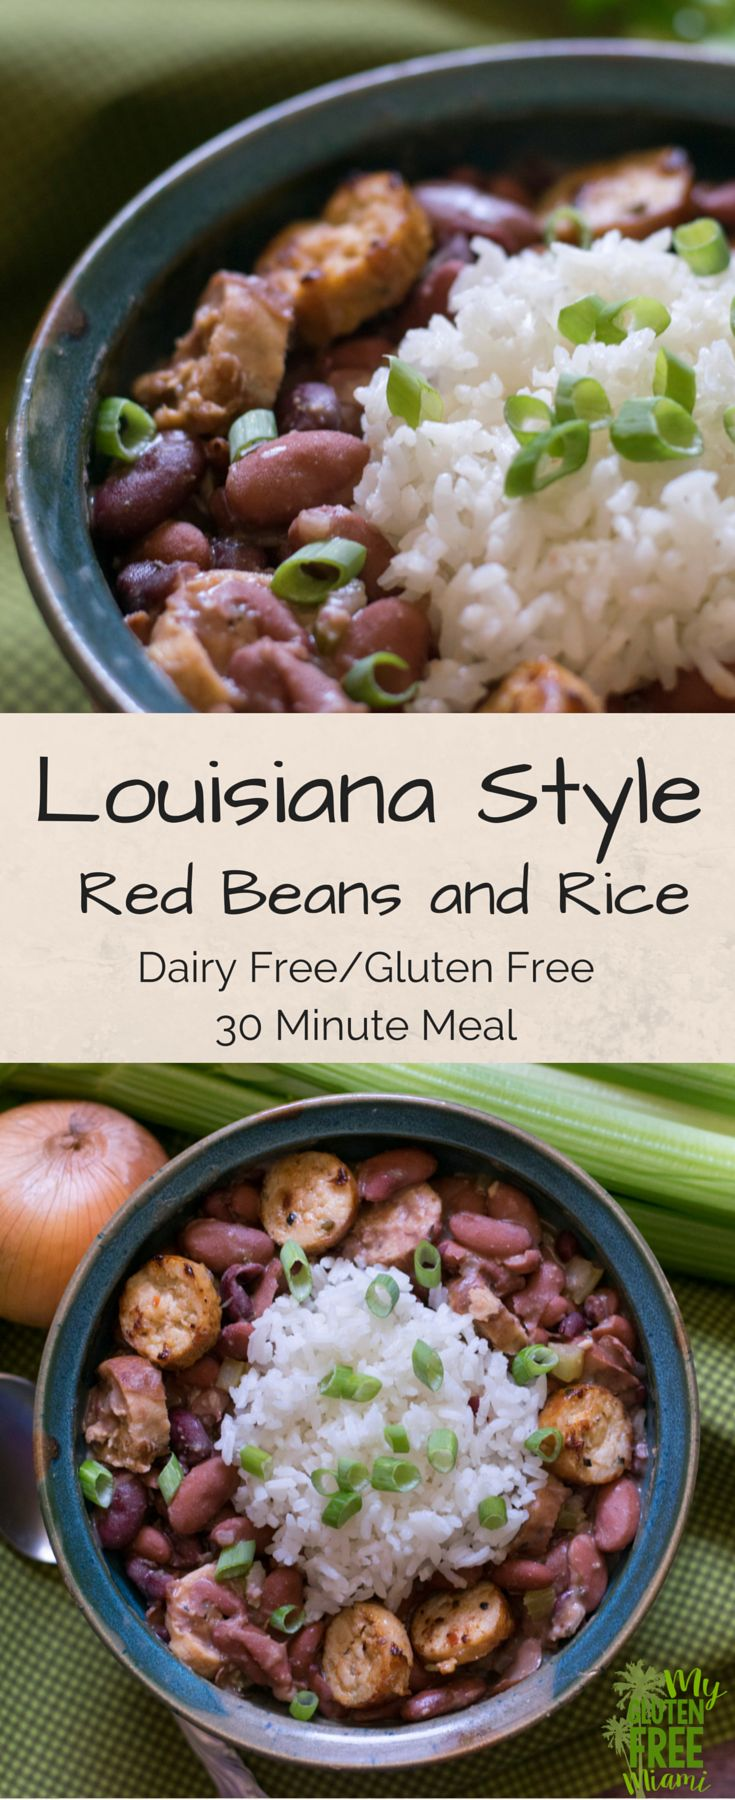 Louisiana Style Red Beans and Rice made with First Fresh Hot Italian Chicken Sausage. Gluten Free, Dairy Free and ready in under 30 minutes! This easy and delicious meal is sure to become a family favorite.  Be sure to follow My Gluten Free Miami for an amazing recipe to use with the leftovers!